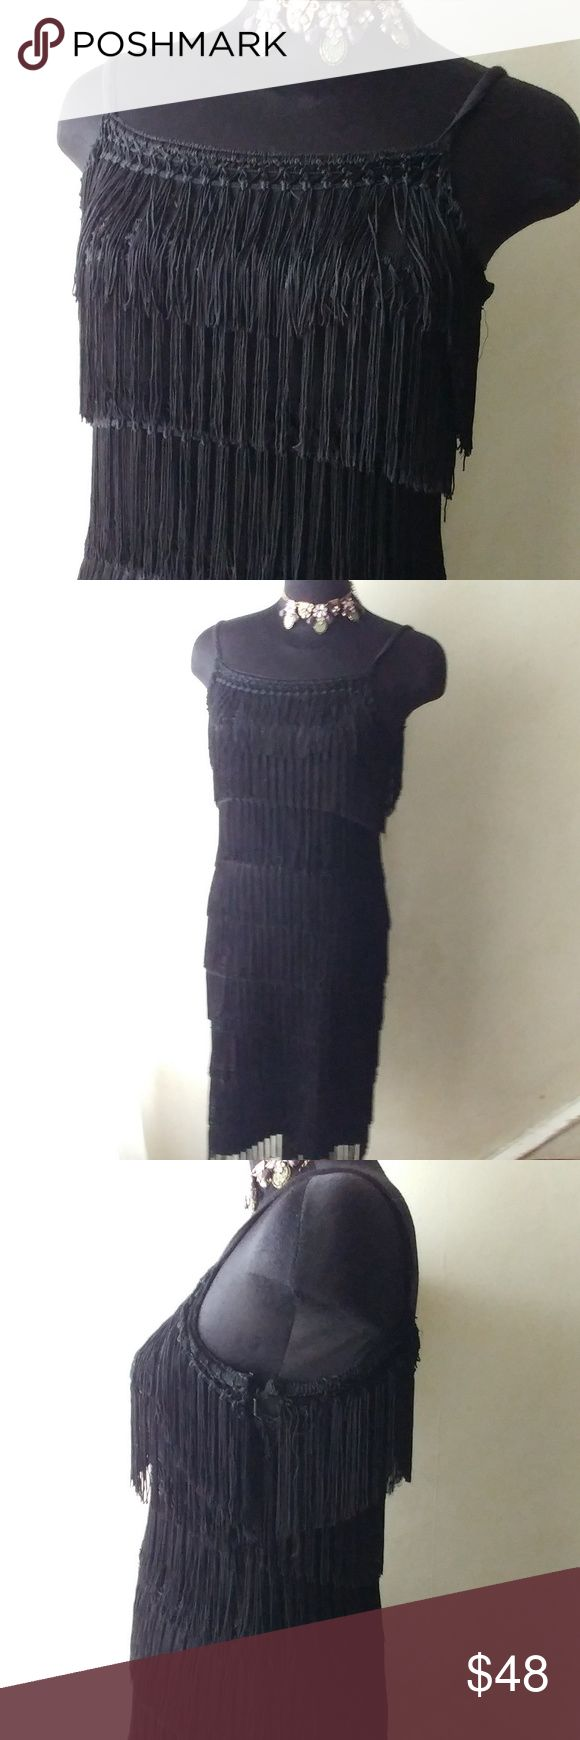 Nina Leonard Sexy Shingled Little Black Dress Perfect condition.  No signs of wear. Absolute stunner. All shingles are intact. Movement with each step. Acrylic wool blend.  Very nice weight and stretch on this piece. Side zip, 18 inches pit to pit, 42 inches in length (including straps) Size says small however mannequin fits 8/10. Nice stretch with perfect structure and memory in fabric. Perfect piece to get noticed in. Don't miss out. Nina Leonard Dresses Midi